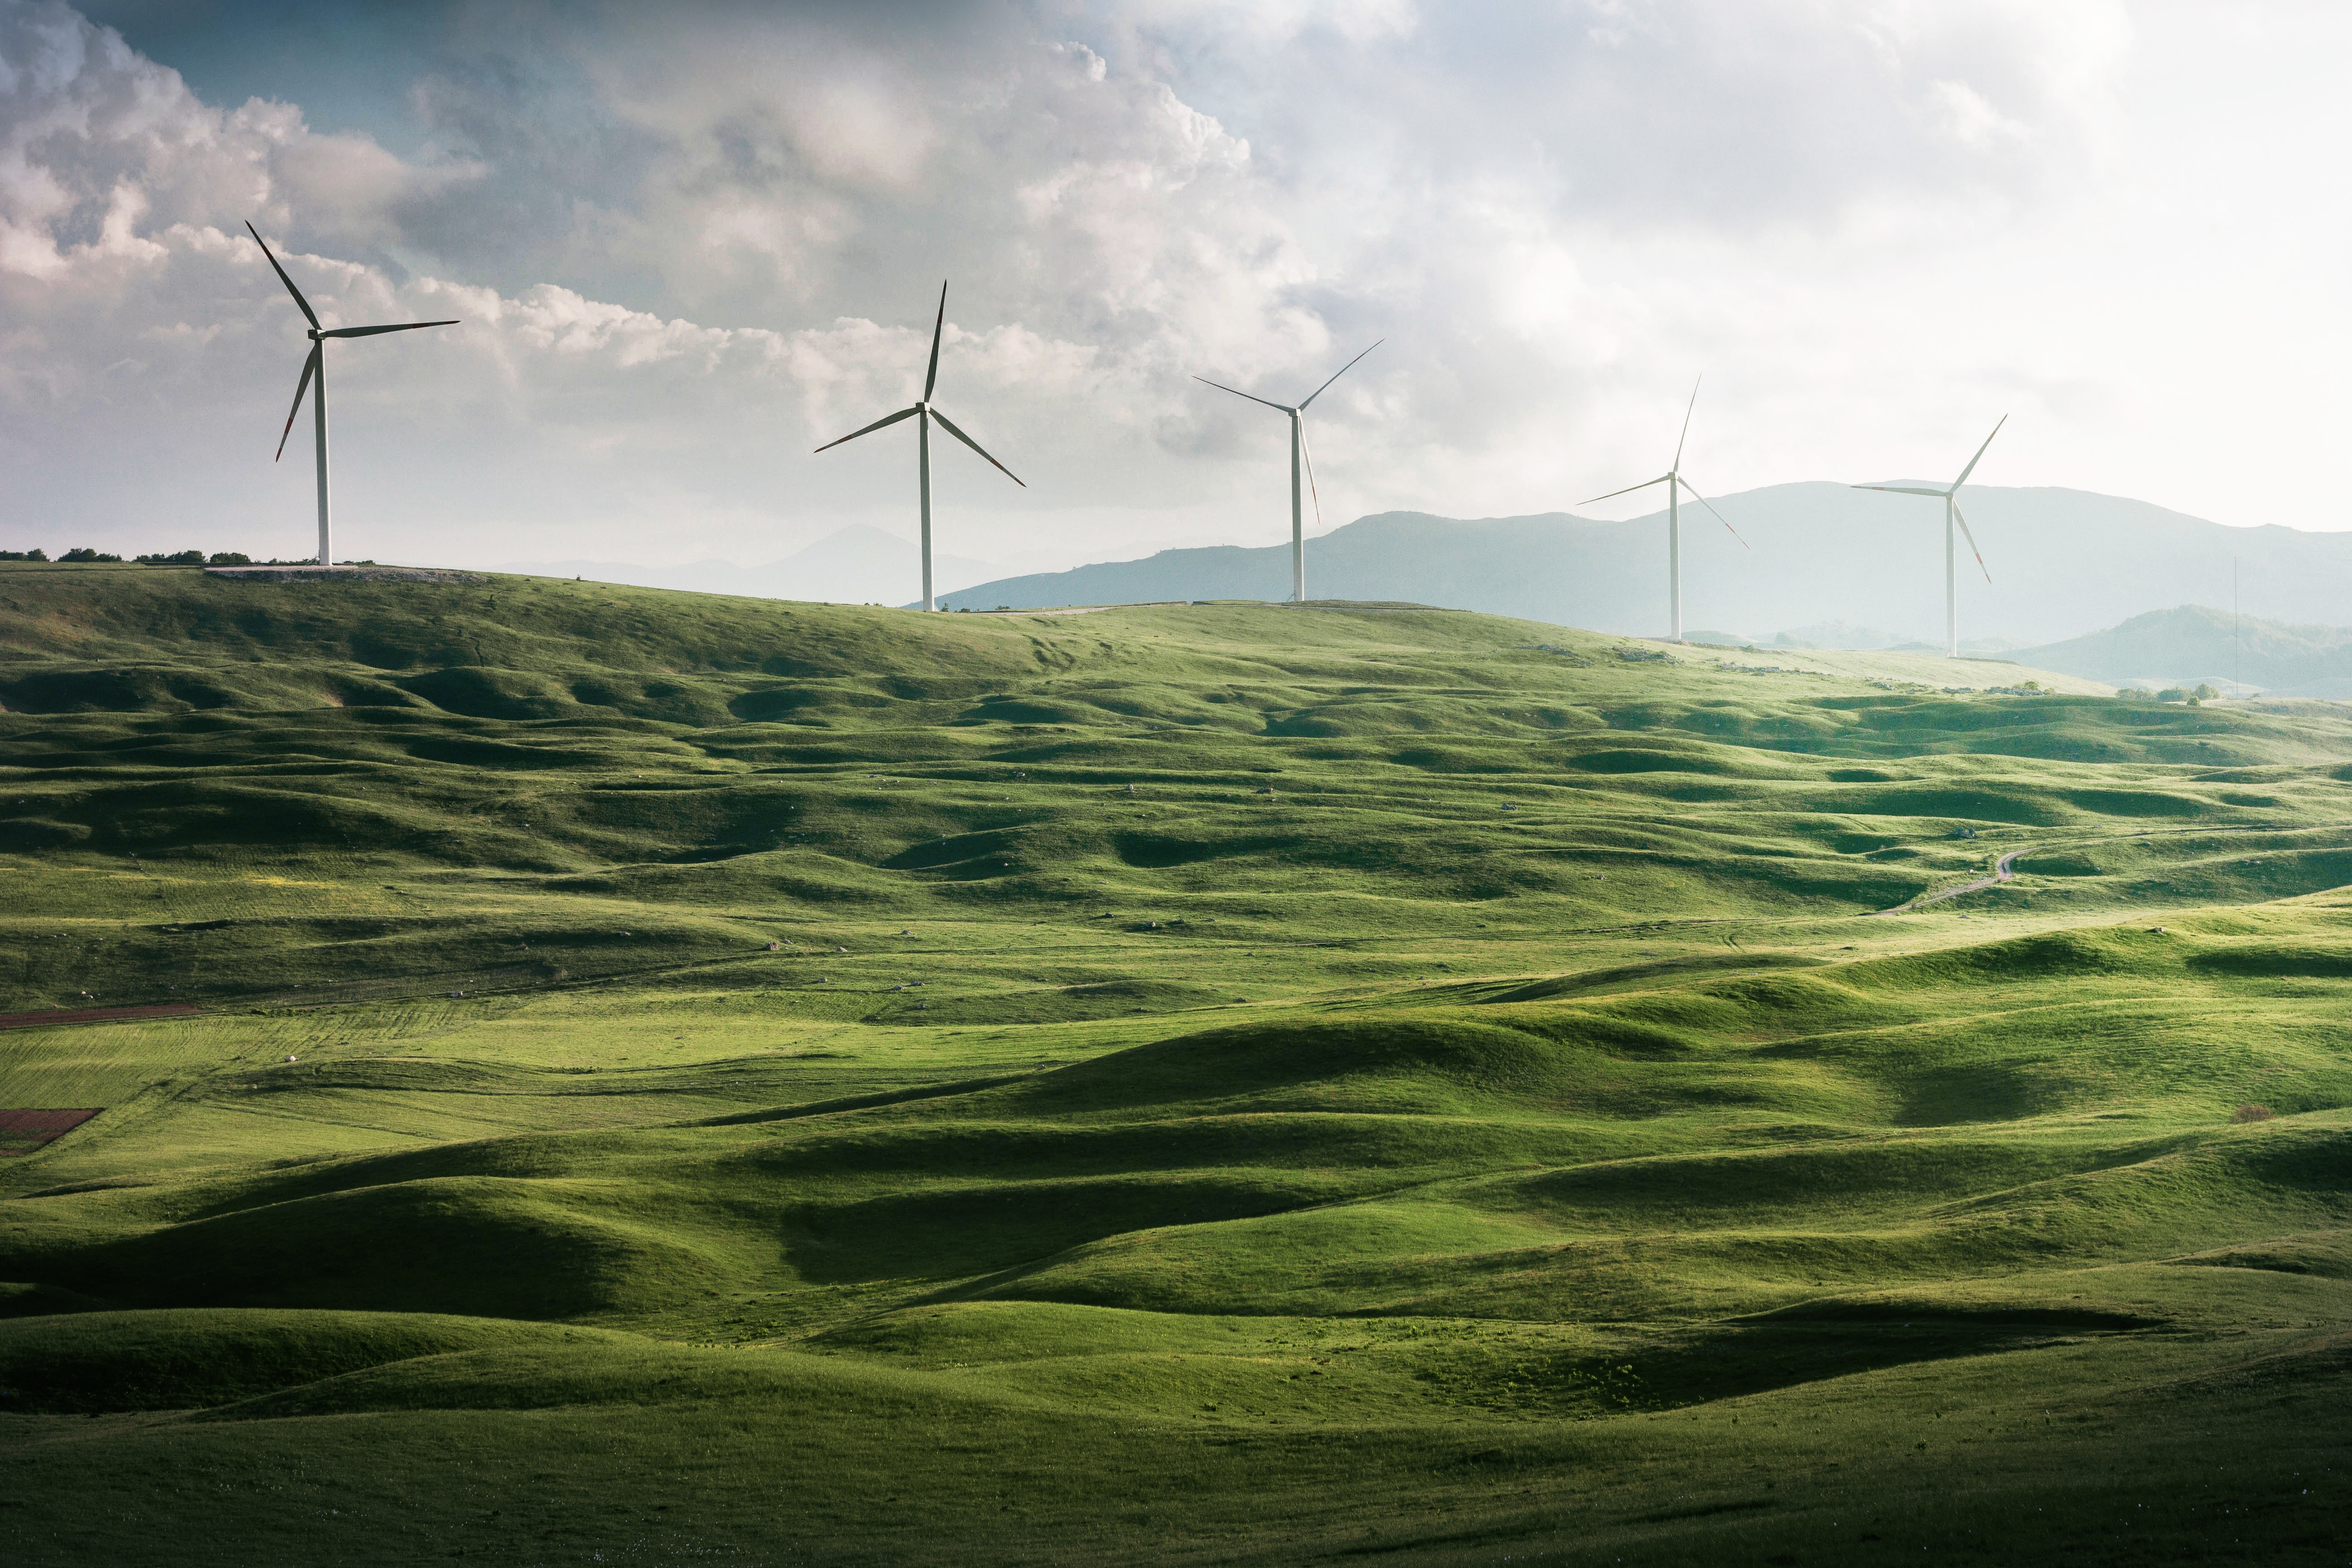 Windmills on a green hill providing green energy for the community